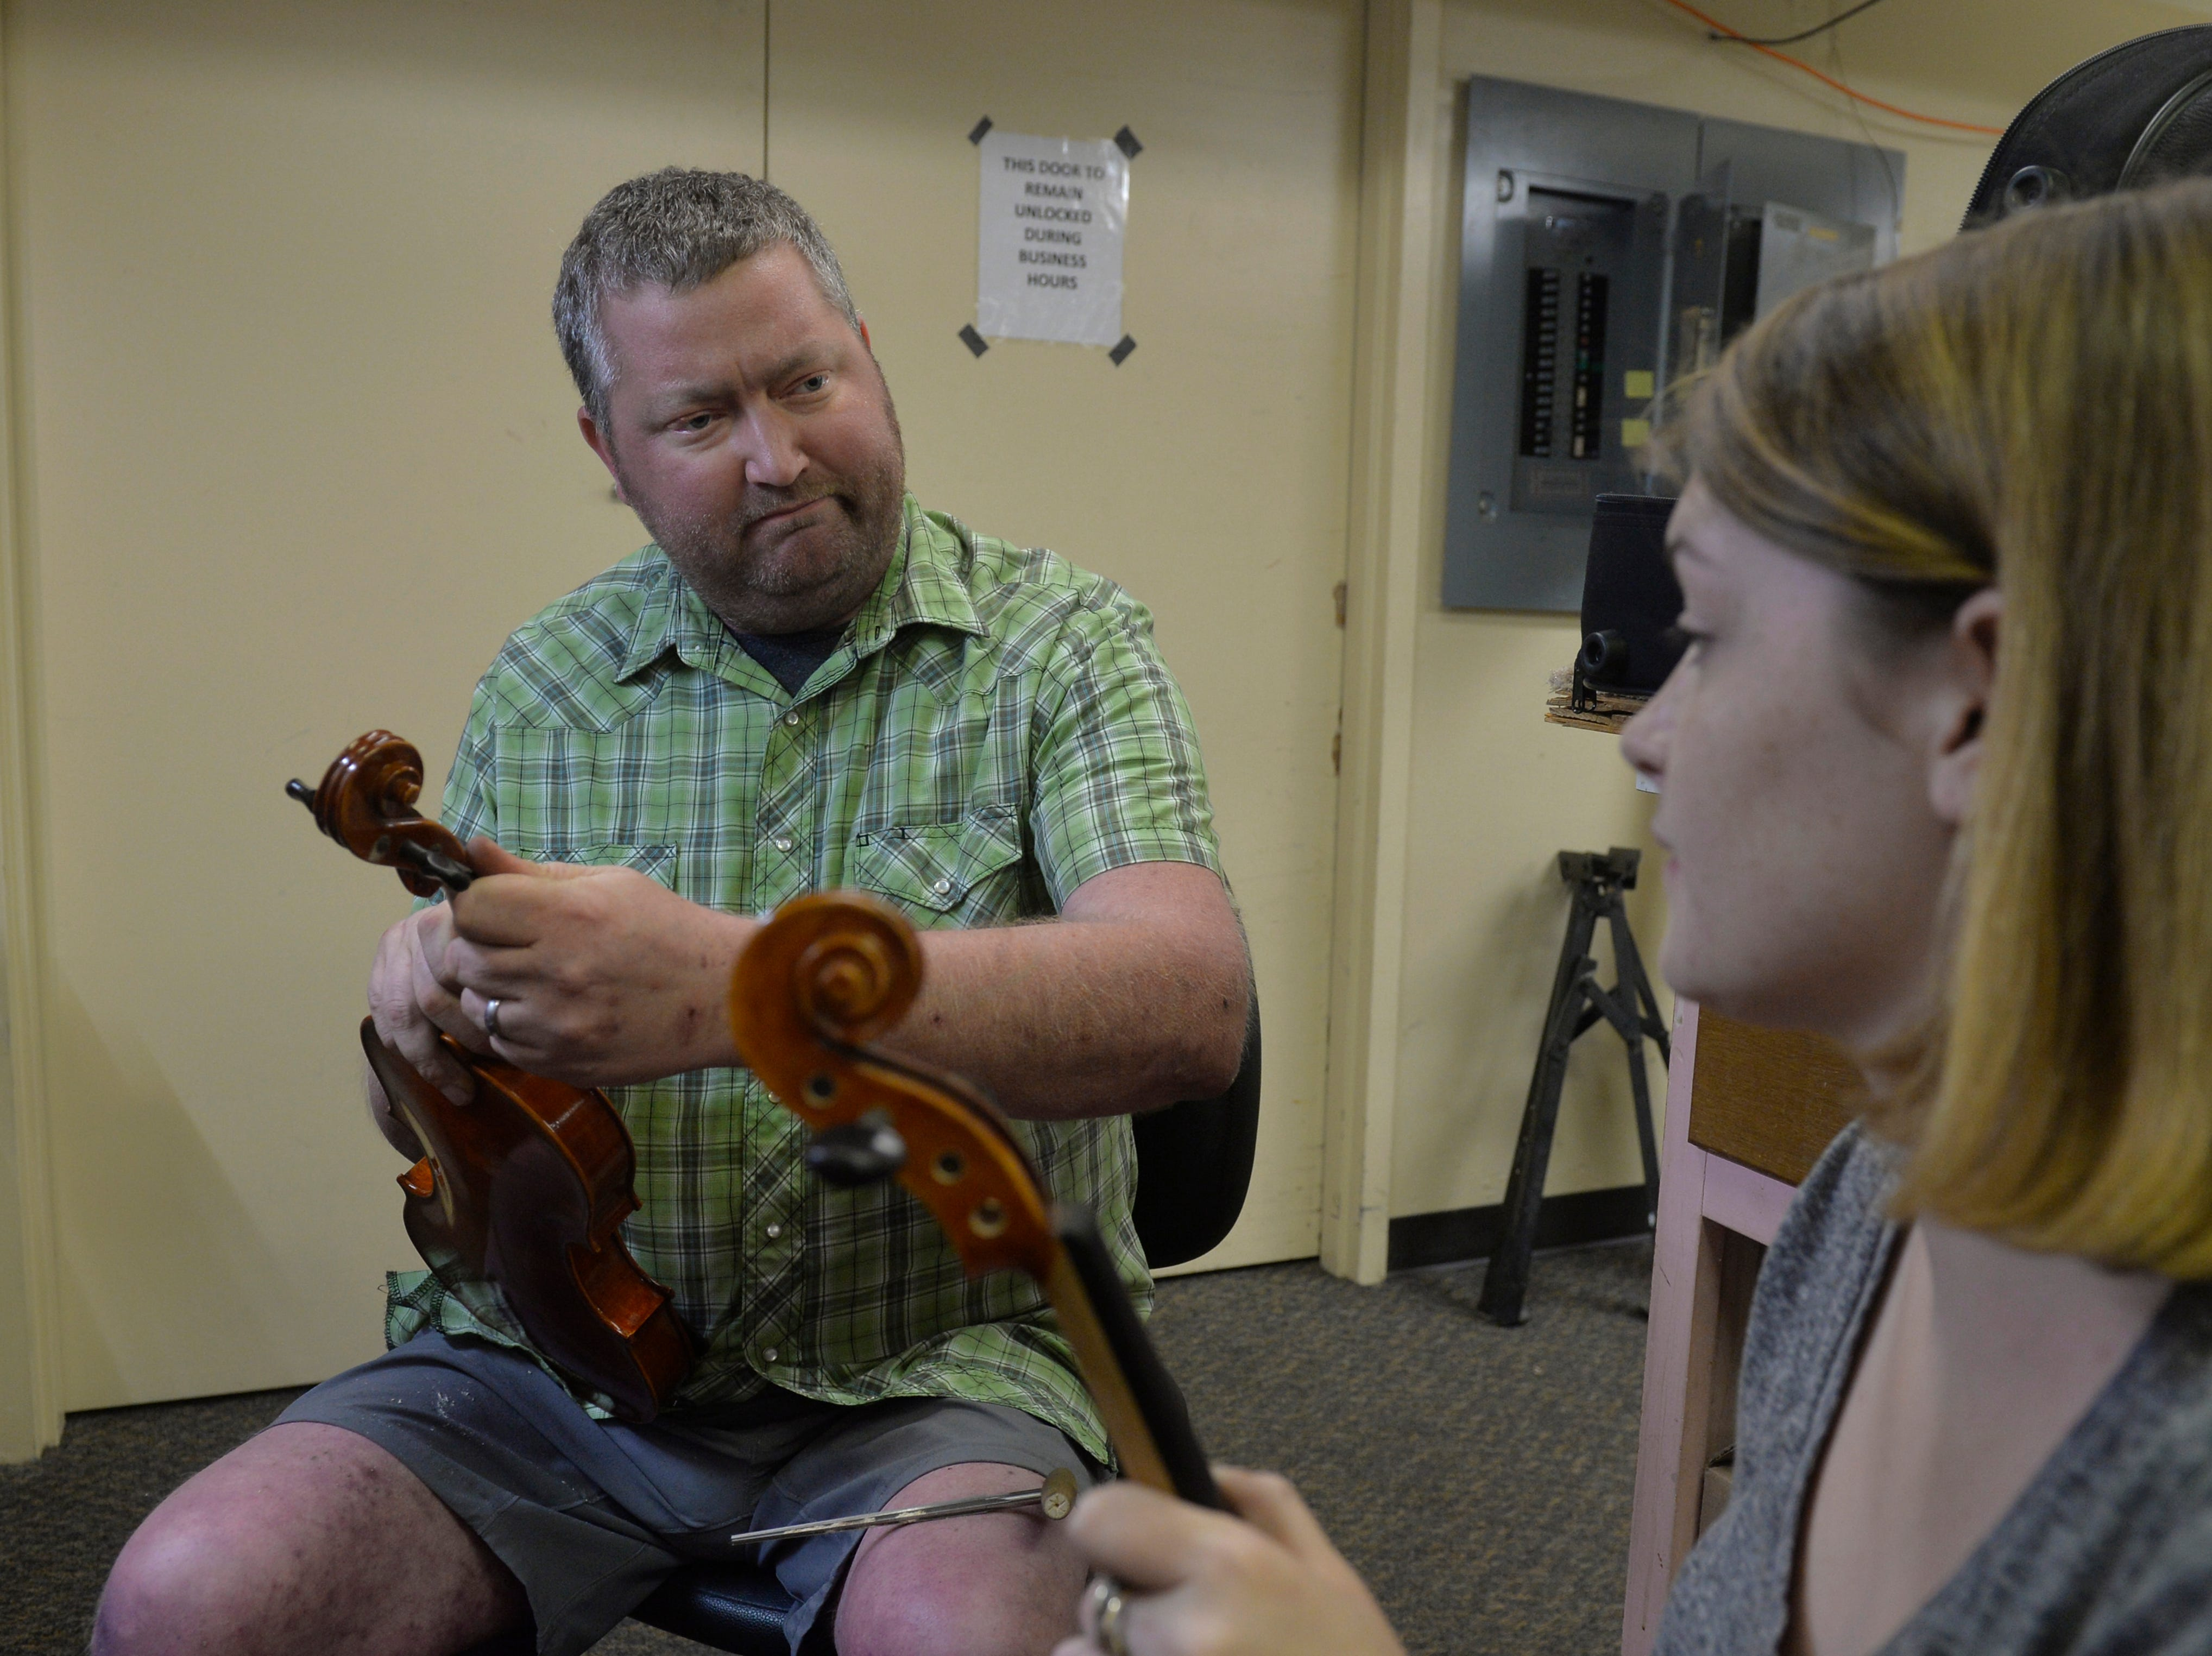 Isaac Calendar teaches Kailey Dunbar about constructing violins that will be used as rentals at the Bass Clef School of Music and Fine Art.